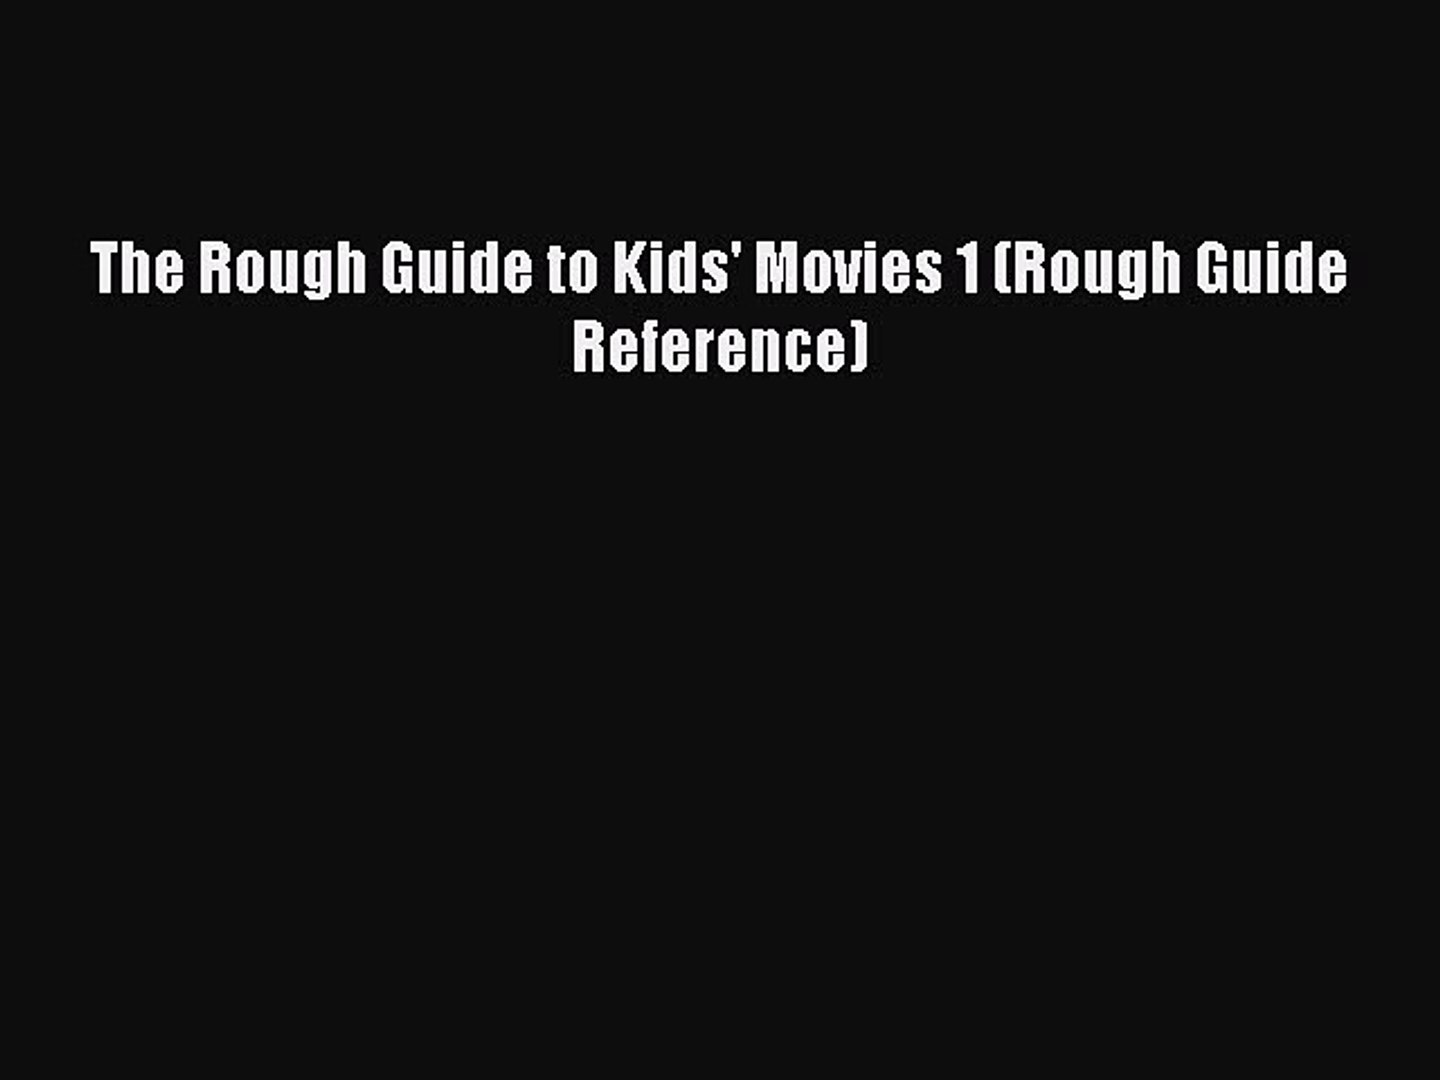 [PDF Download] The Rough Guide to Kids' Movies 1 (Rough Guide Reference) [Download] Full Ebook